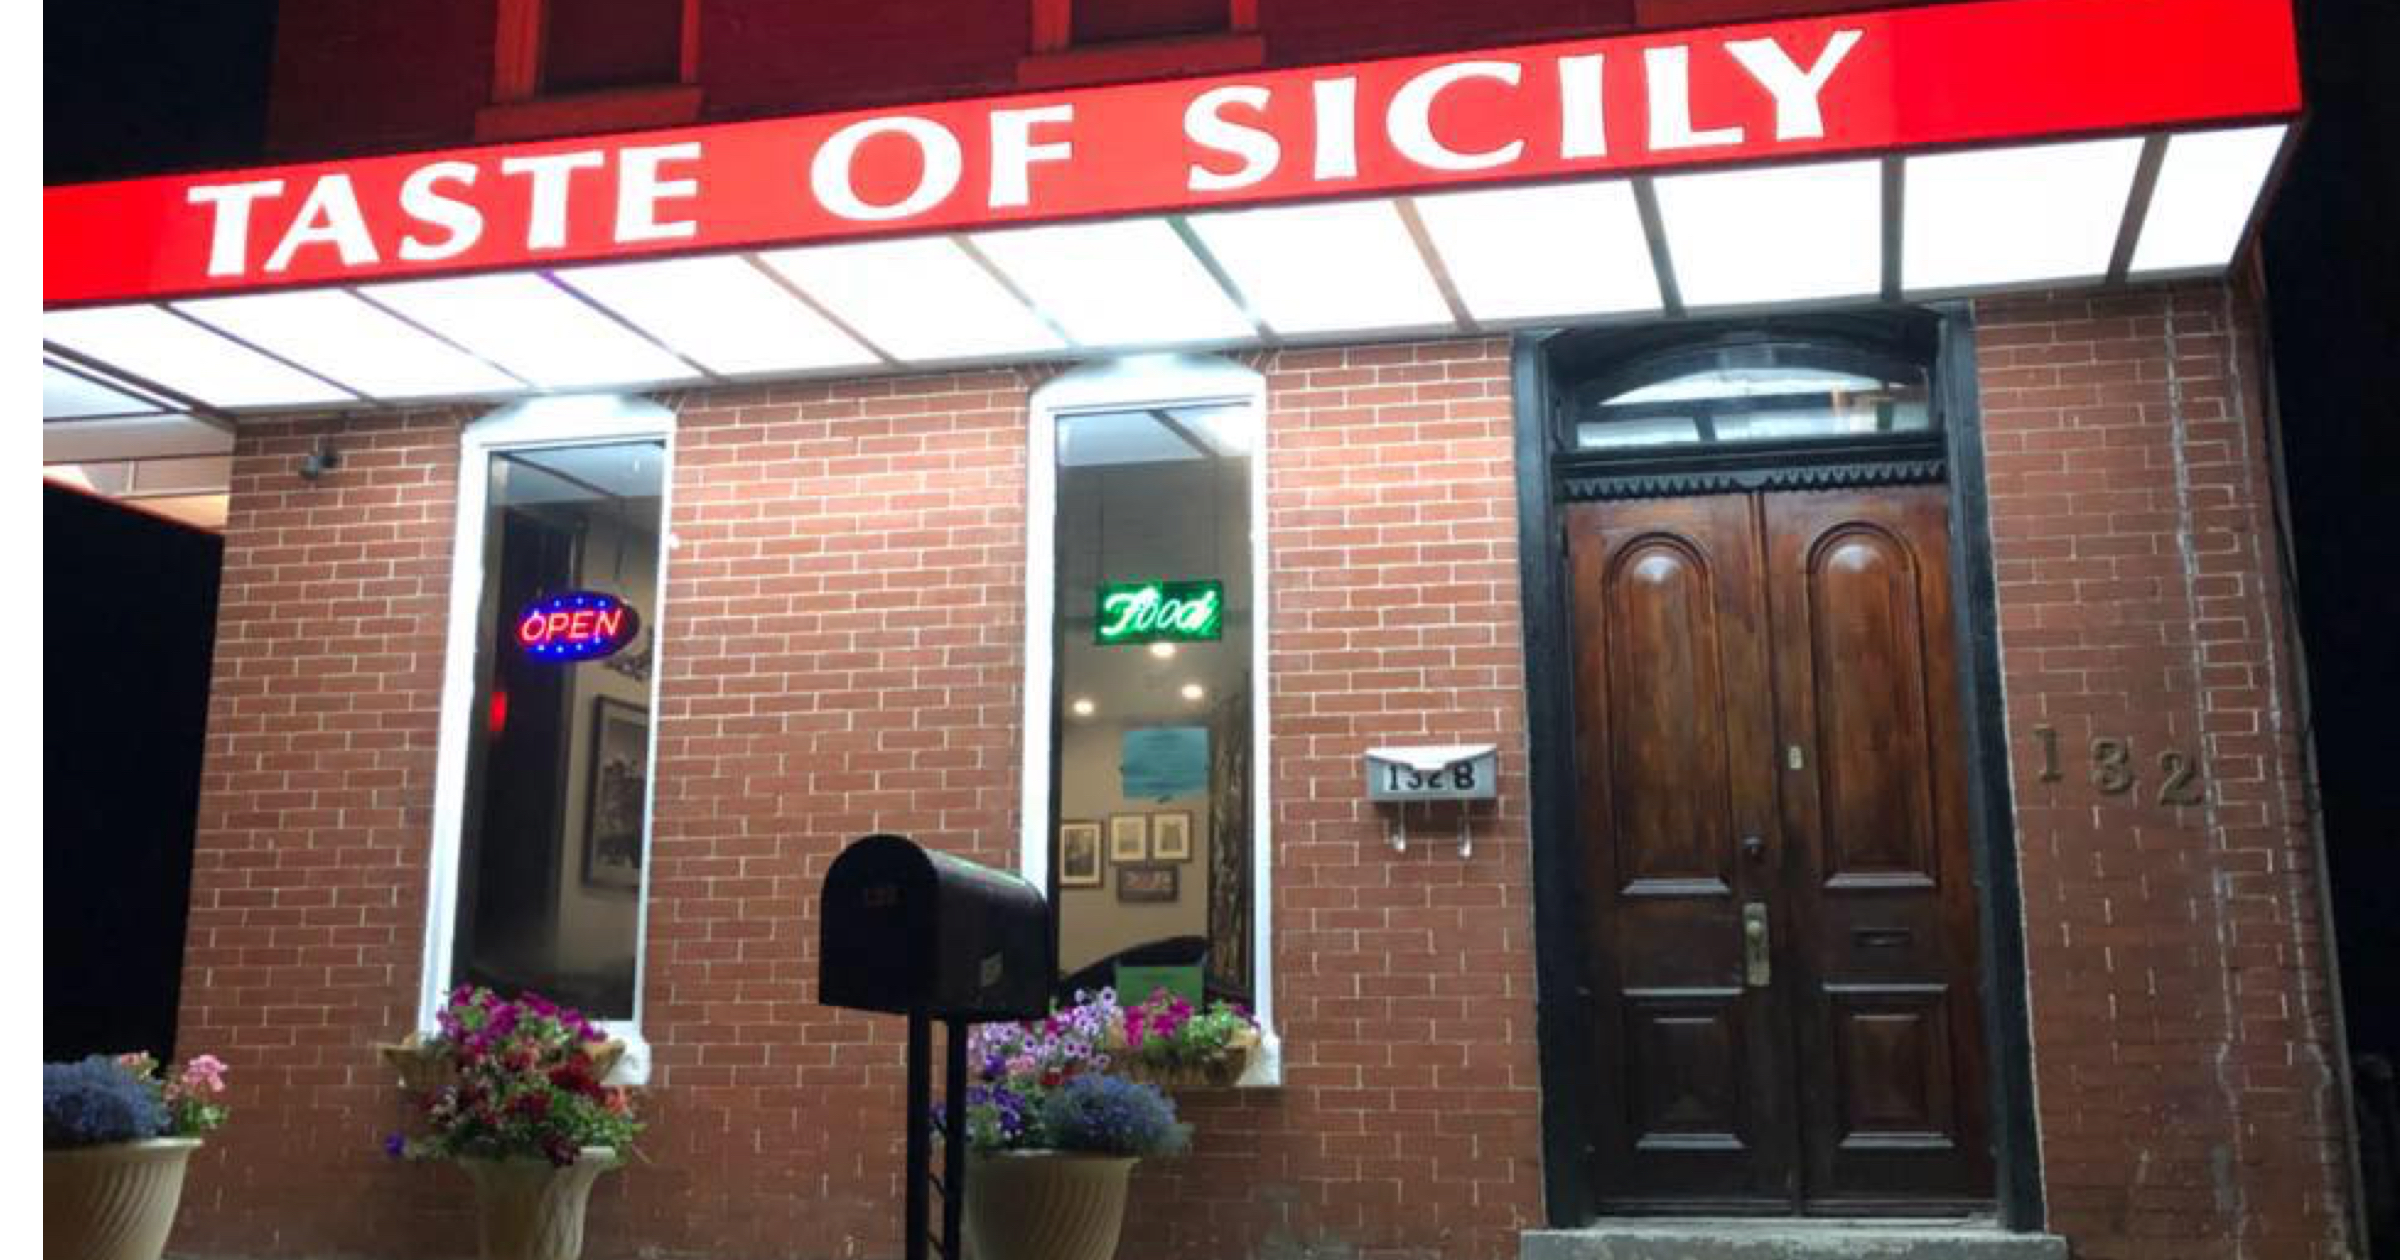 Taste of Sicily says it will continue to operate despite receiving letters from state threatening fines and penalties